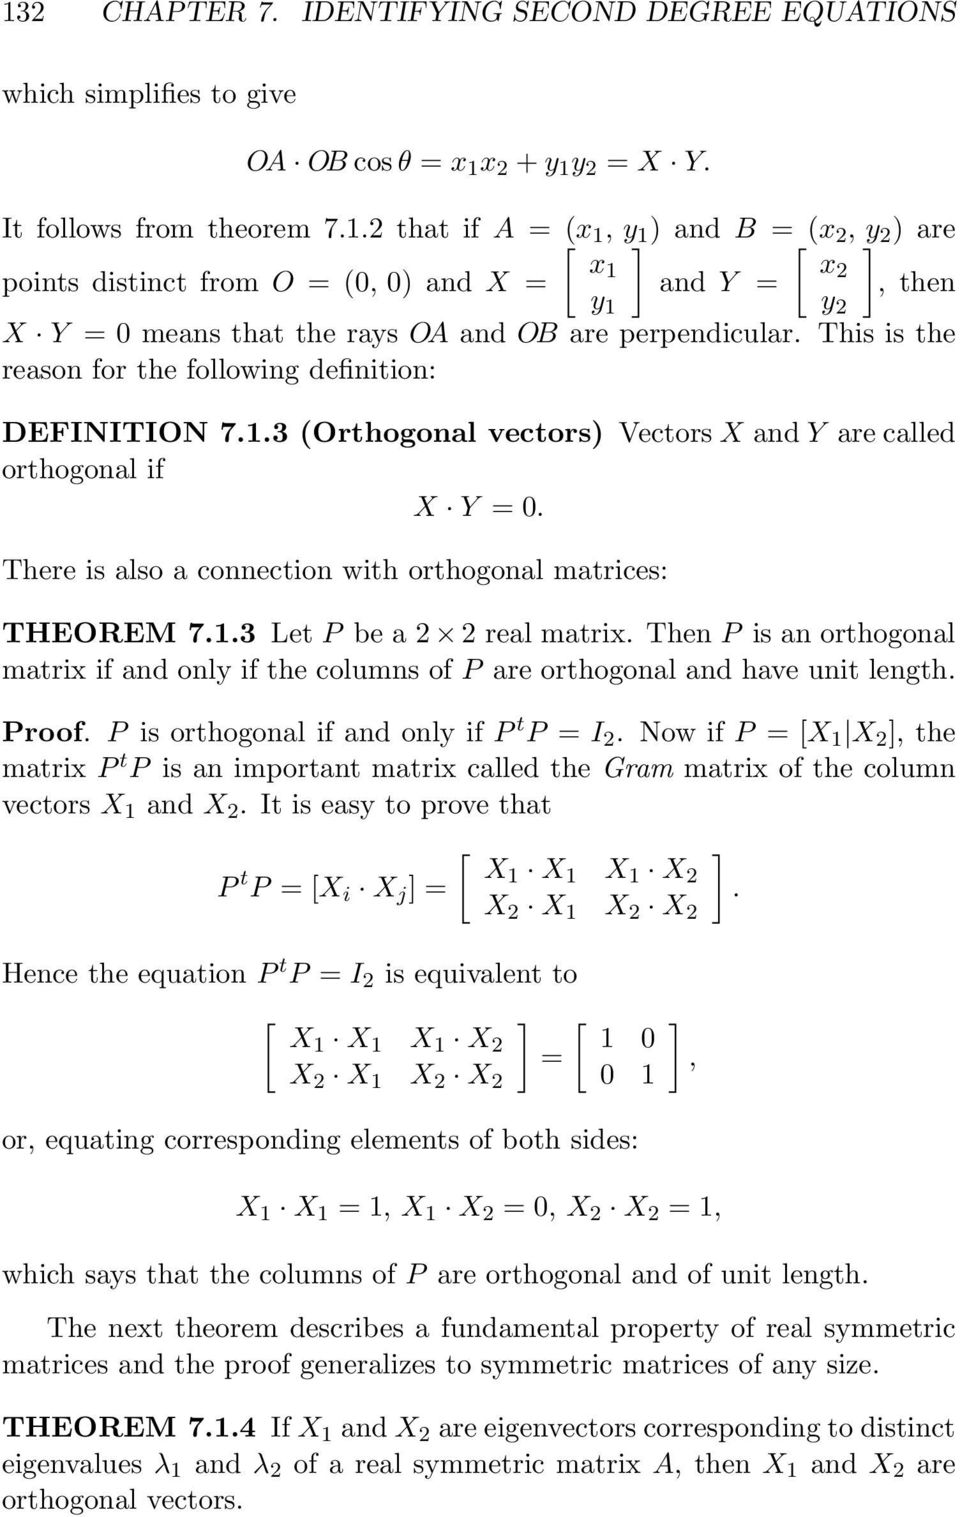 This is the reason for the following definition: DEFINITION 7.1.3 (Orthogonal vectors) Vectors X and Y are called orthogonal if X Y = 0. There is also a connection with orthogonal matrices: THEOREM 7.